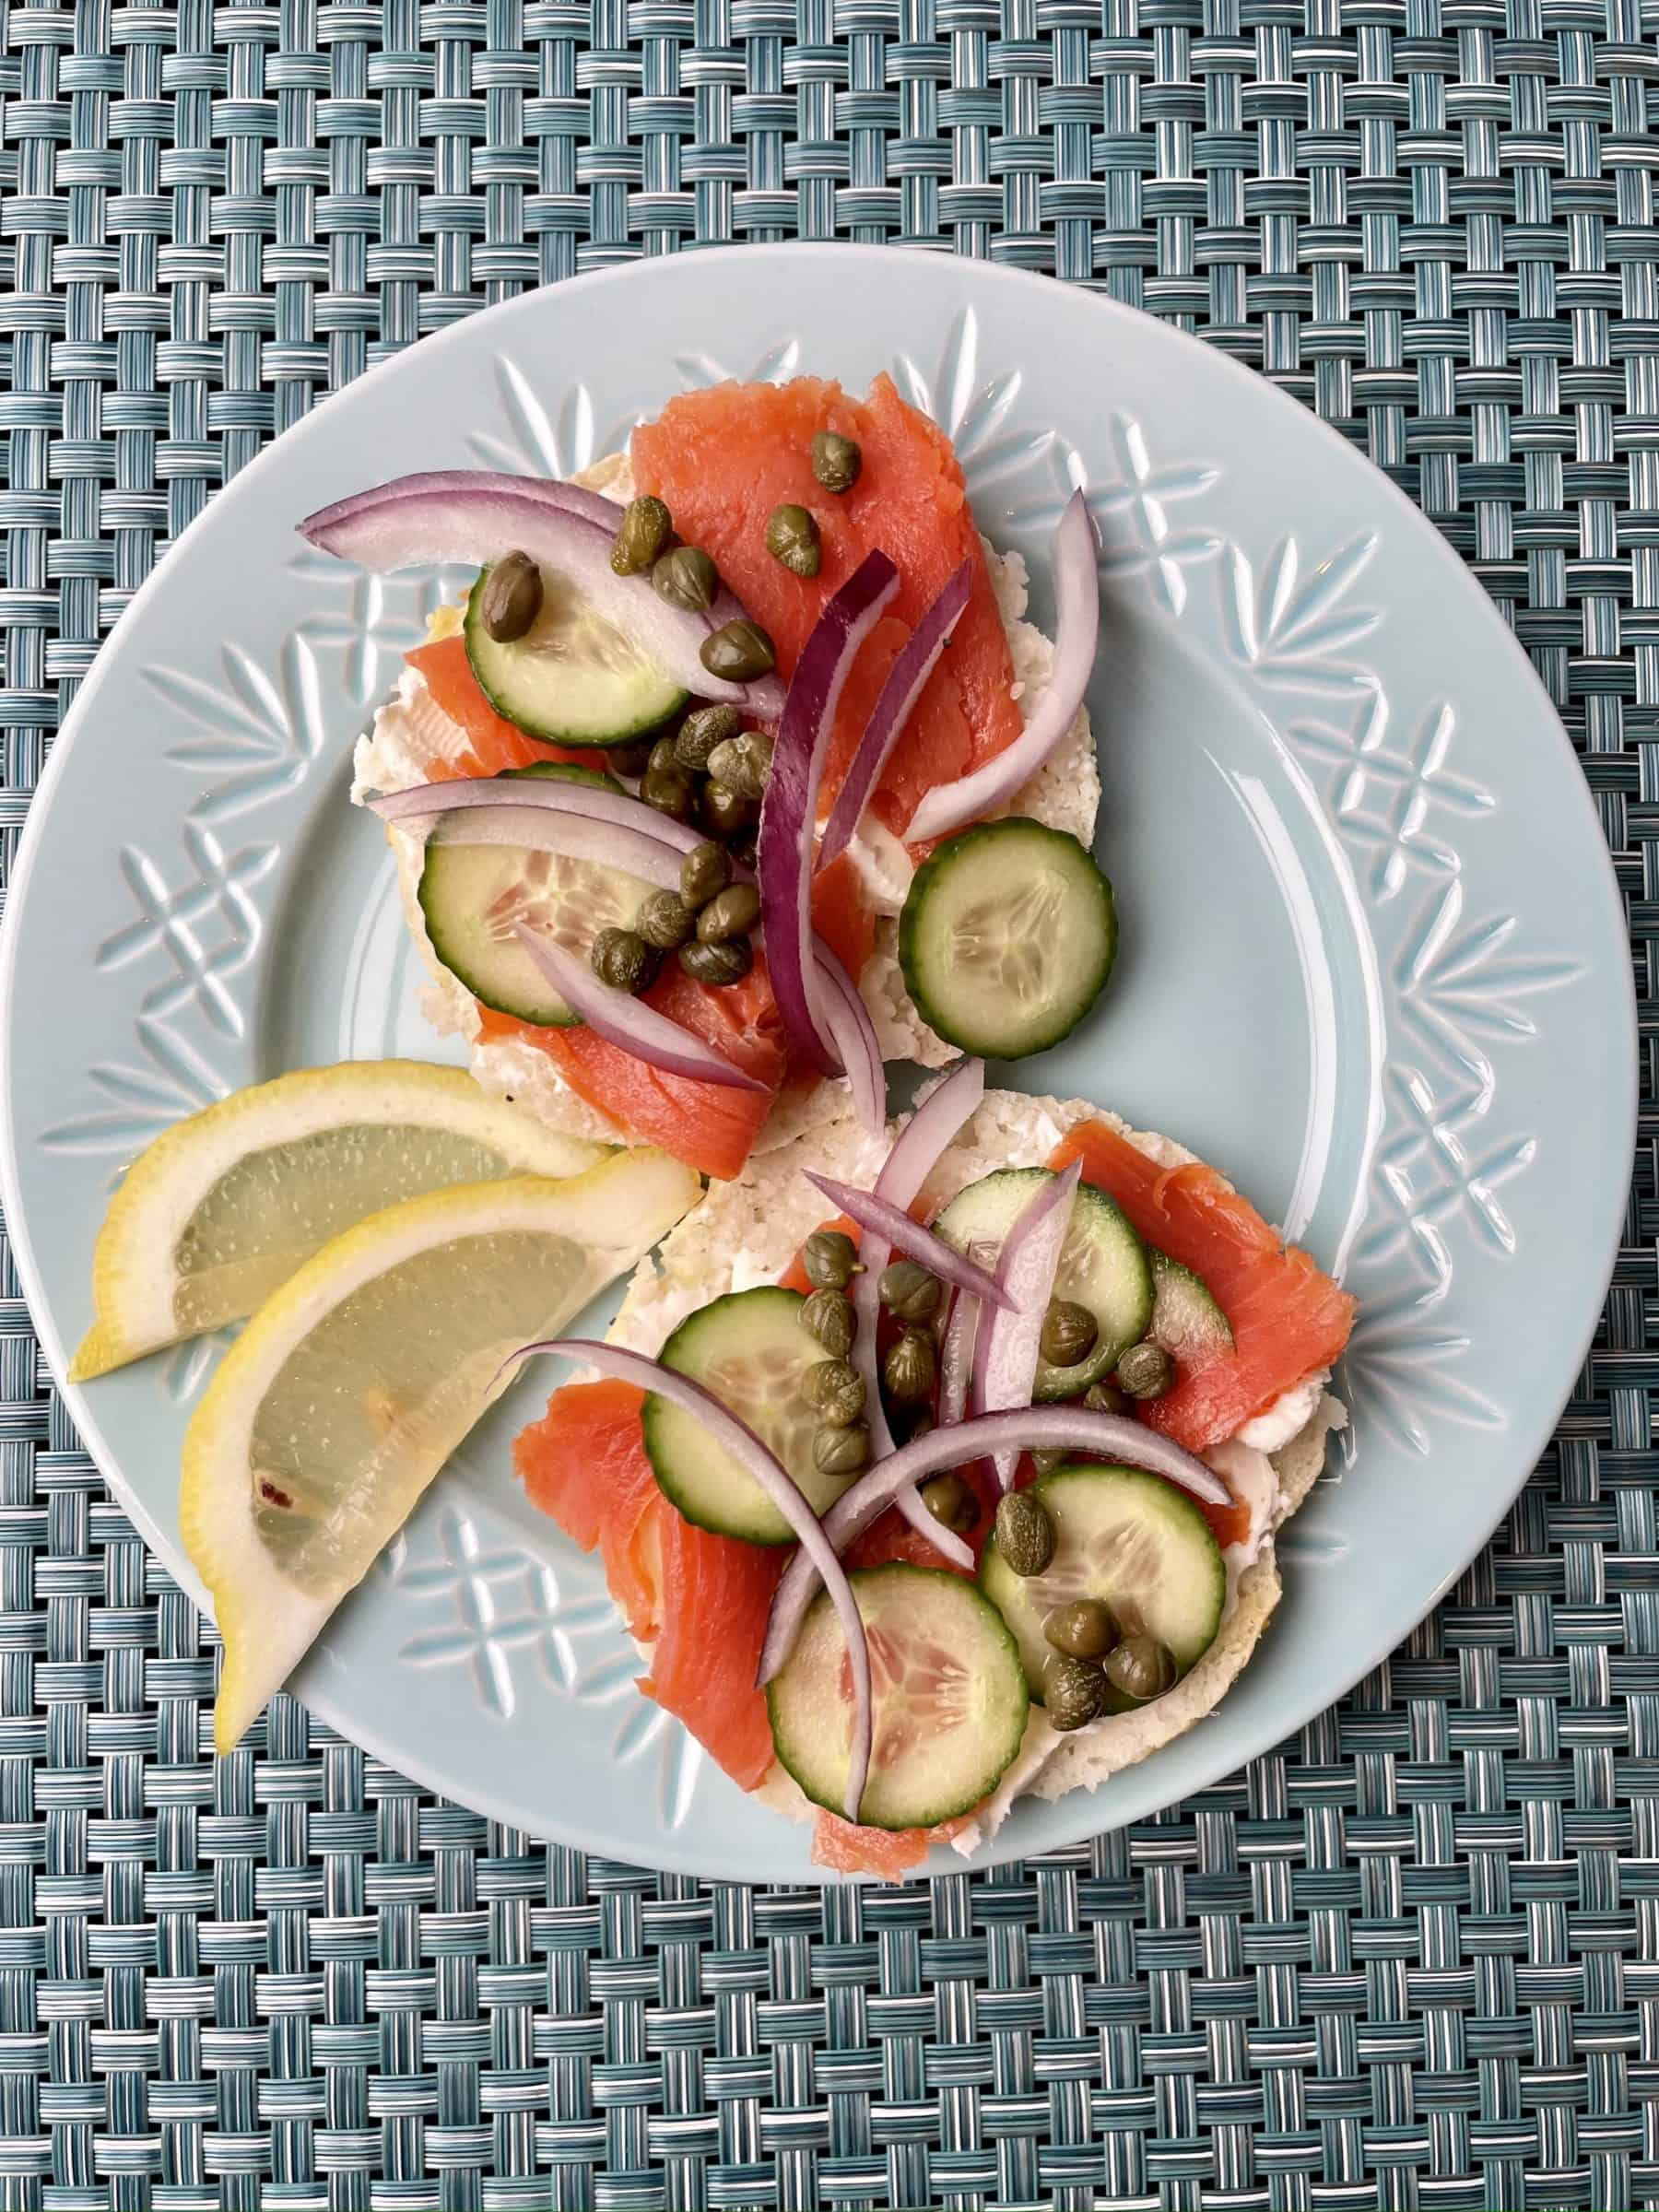 bagels with lox and toppings